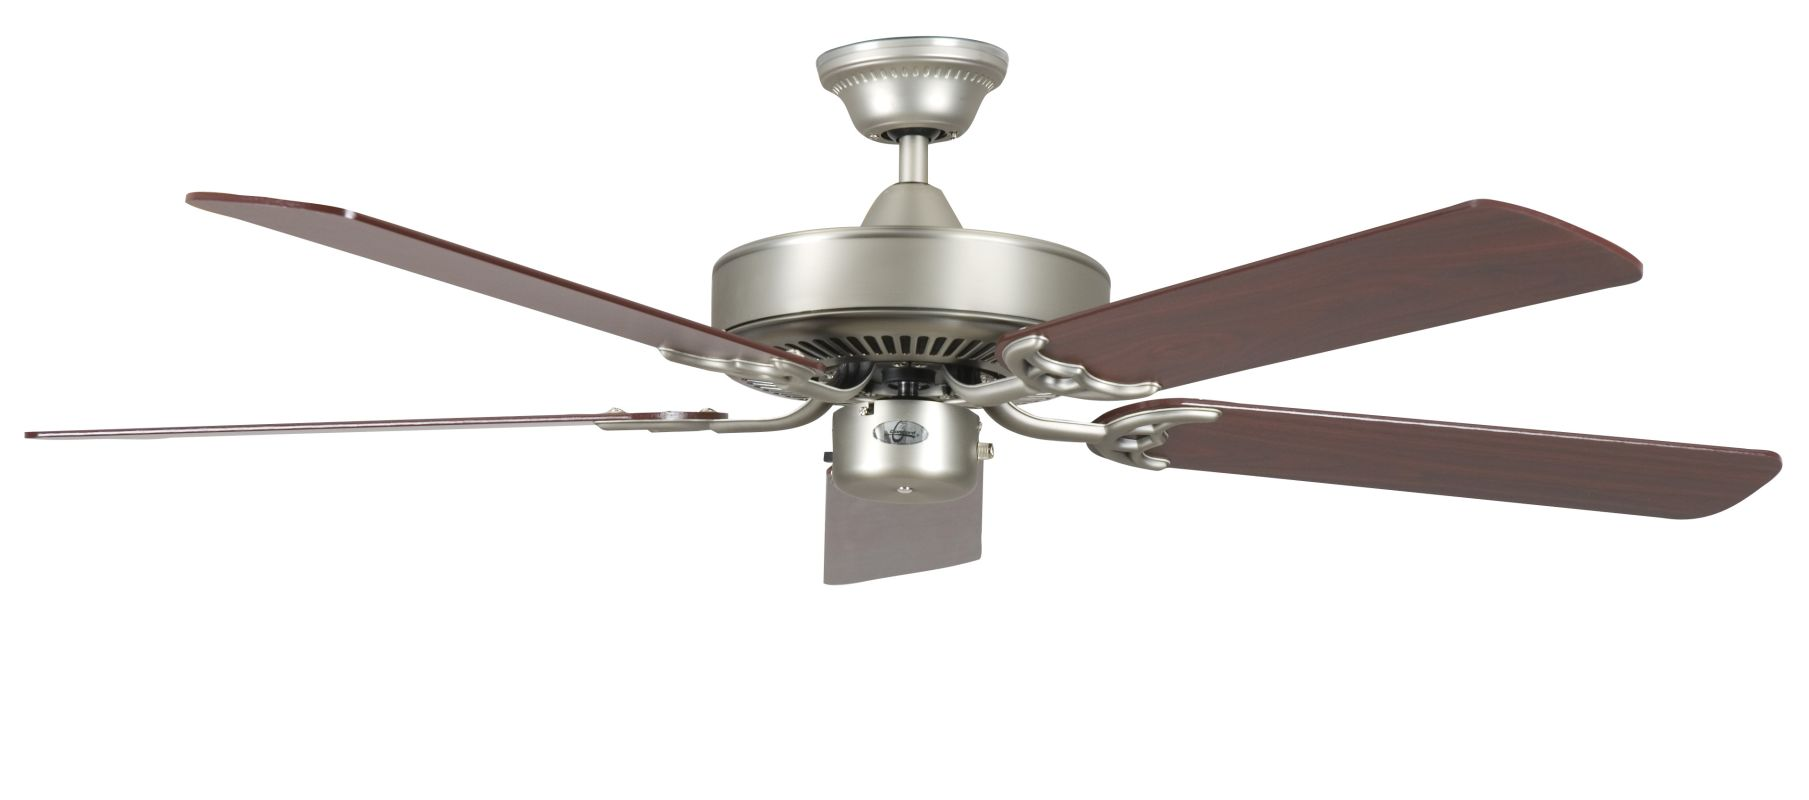 "Concord 52CH5 4 or 5 Blade Interchangeable 52"" Indoor Ceiling Fan with"